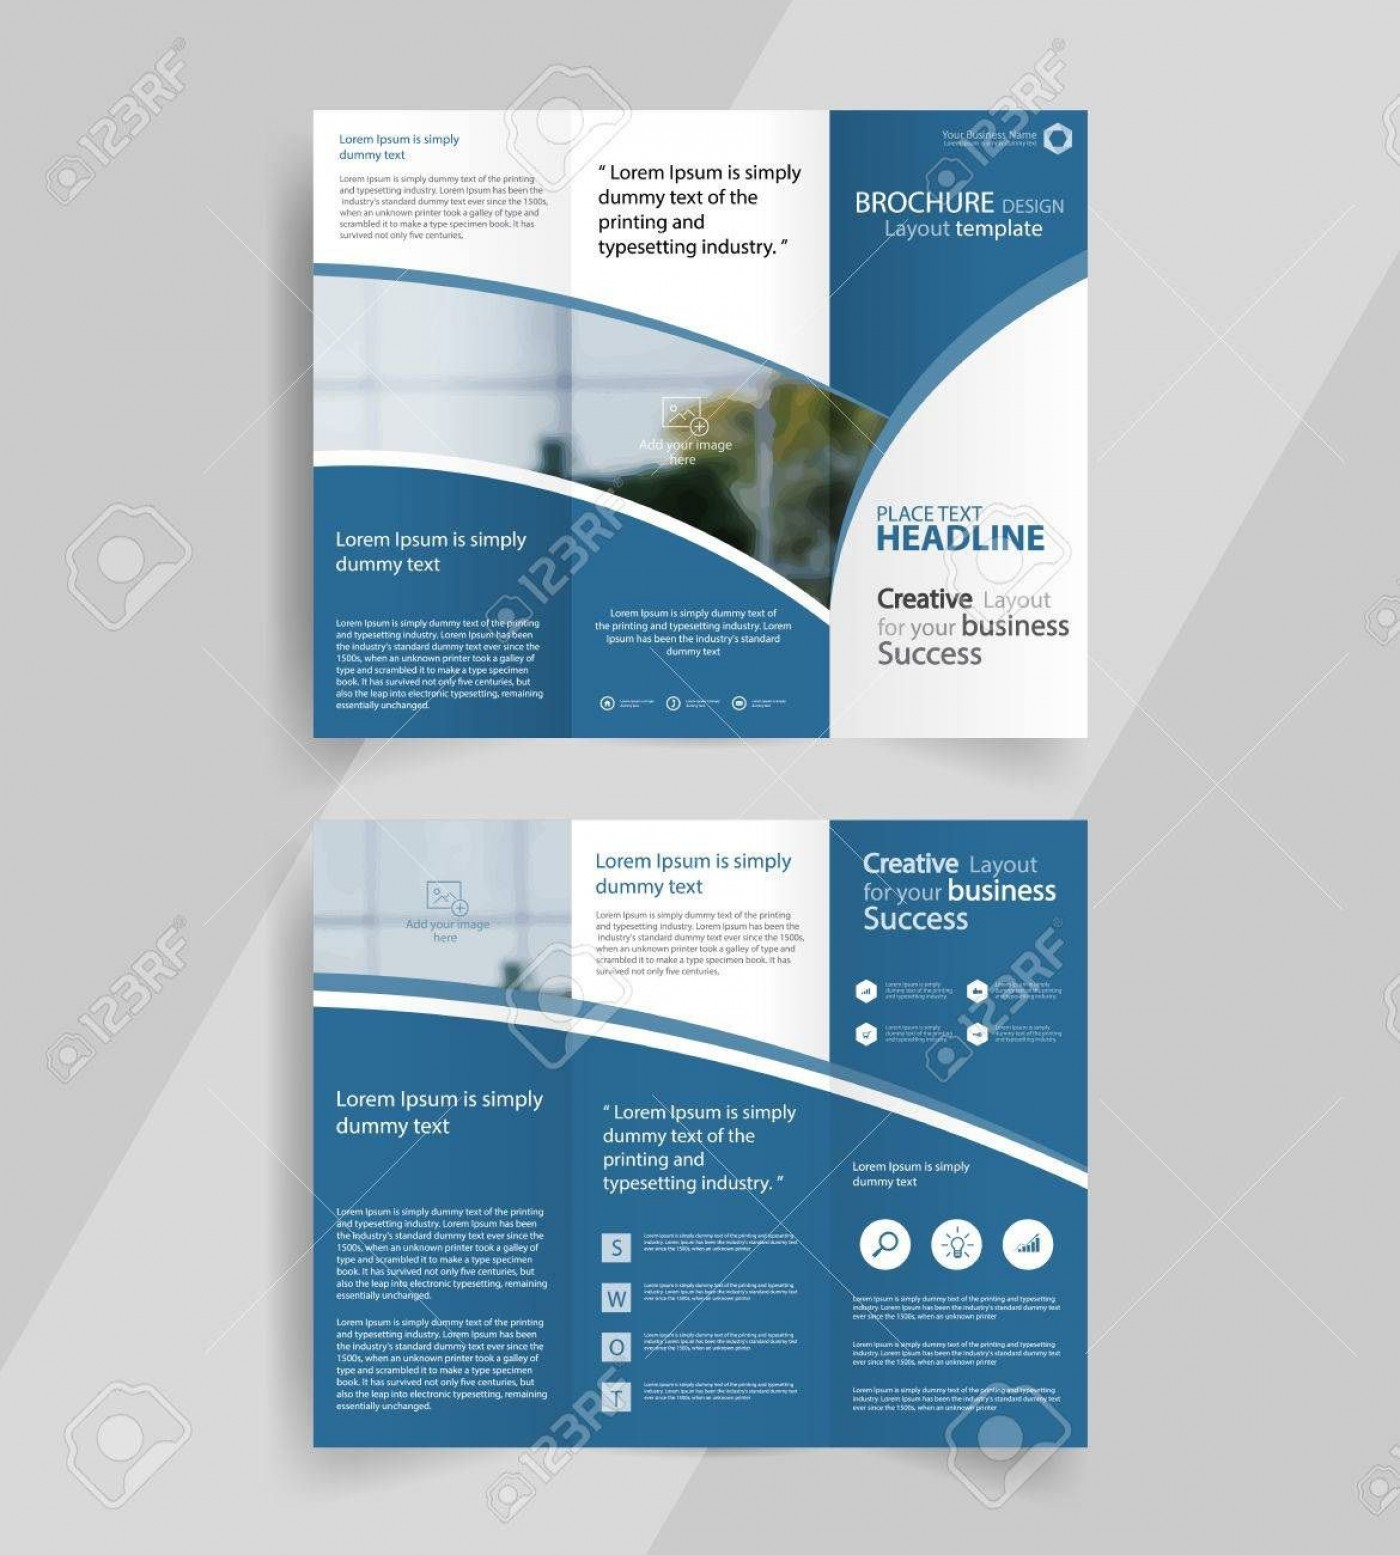 001 Wondrou 3 Fold Brochure Template High Def  For Free1400